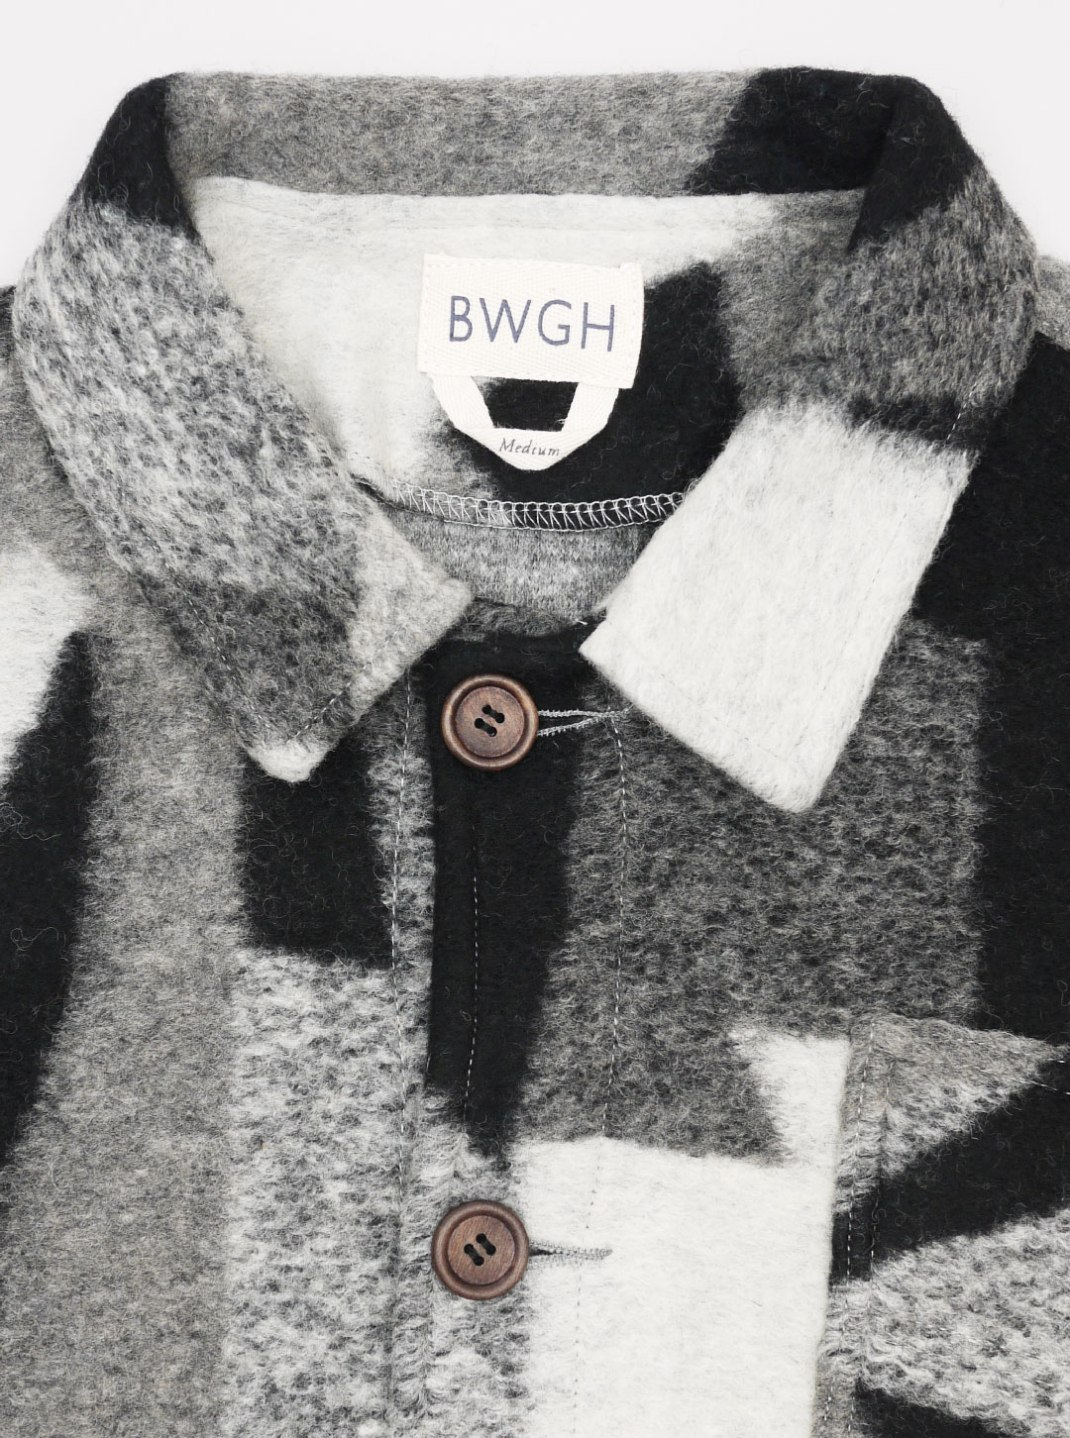 13240_bwgh-coat-multi-blk-whtd2